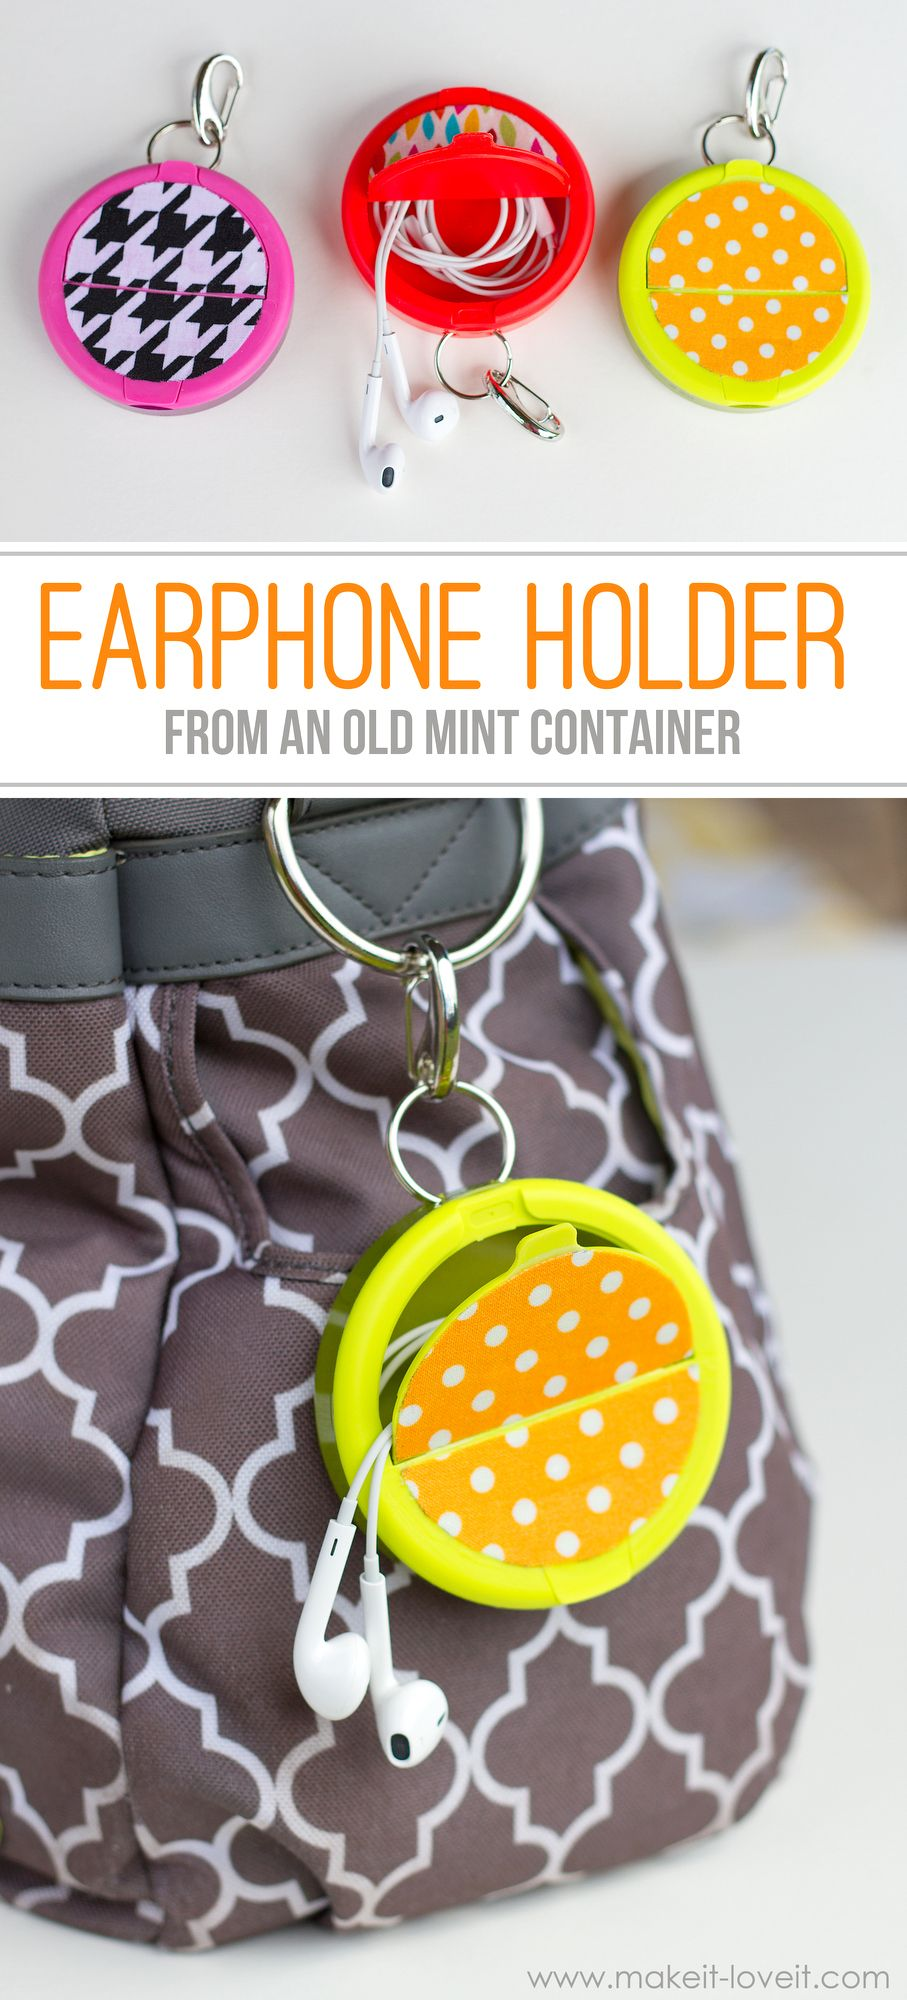 Make An Earphone Holder From A Mint Container Video Included